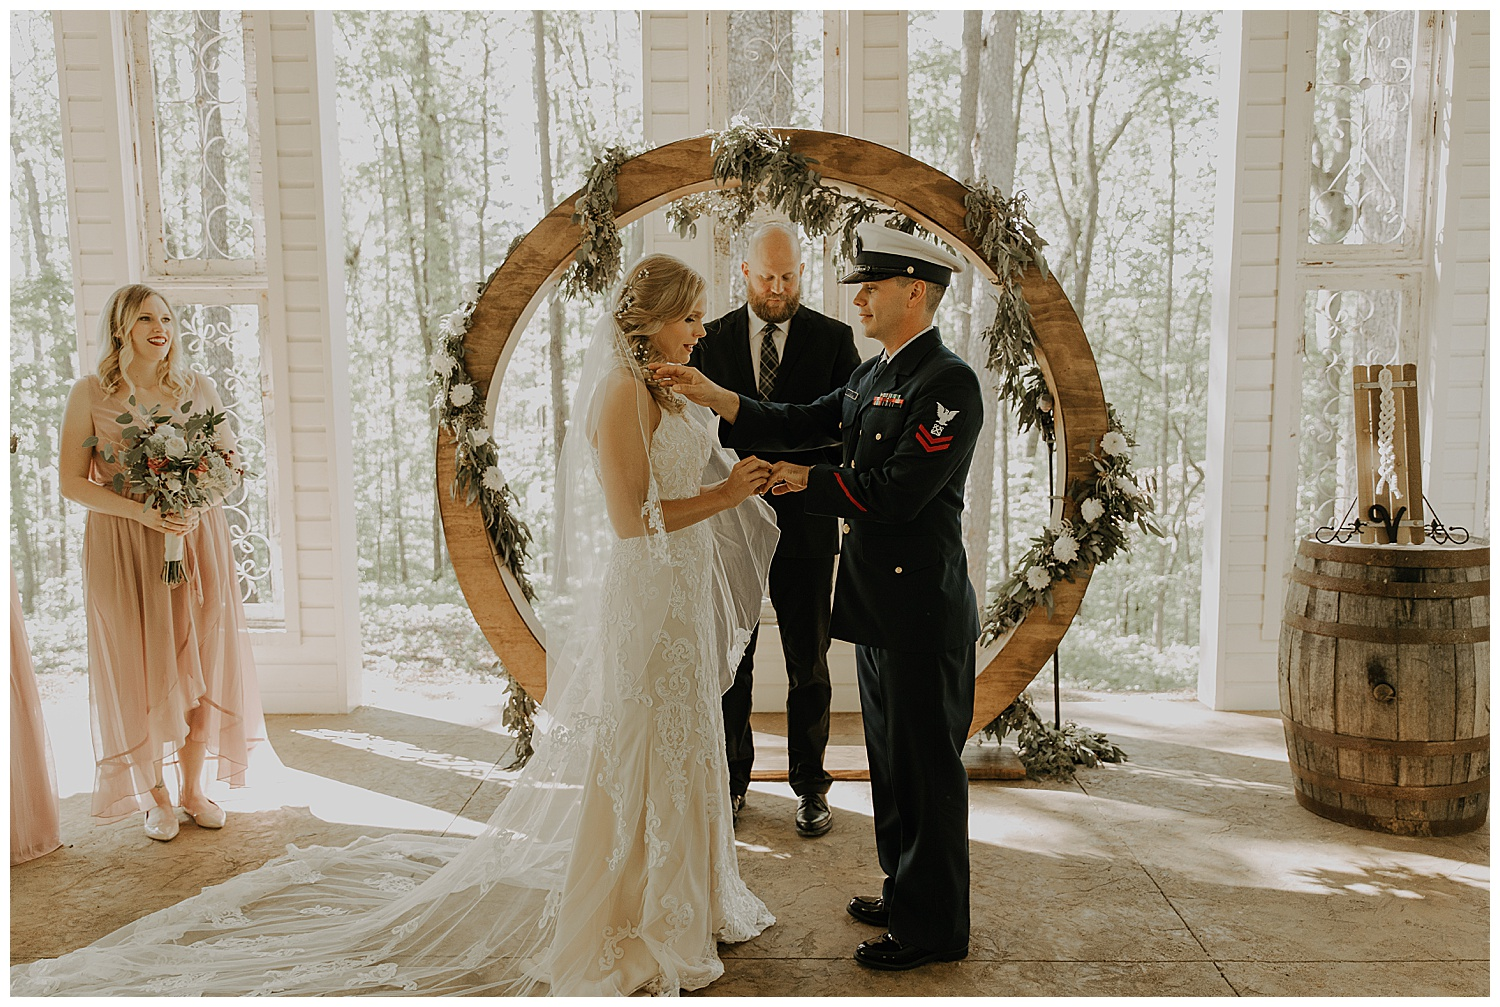 Get you a groom that helps you out, even during your vows!